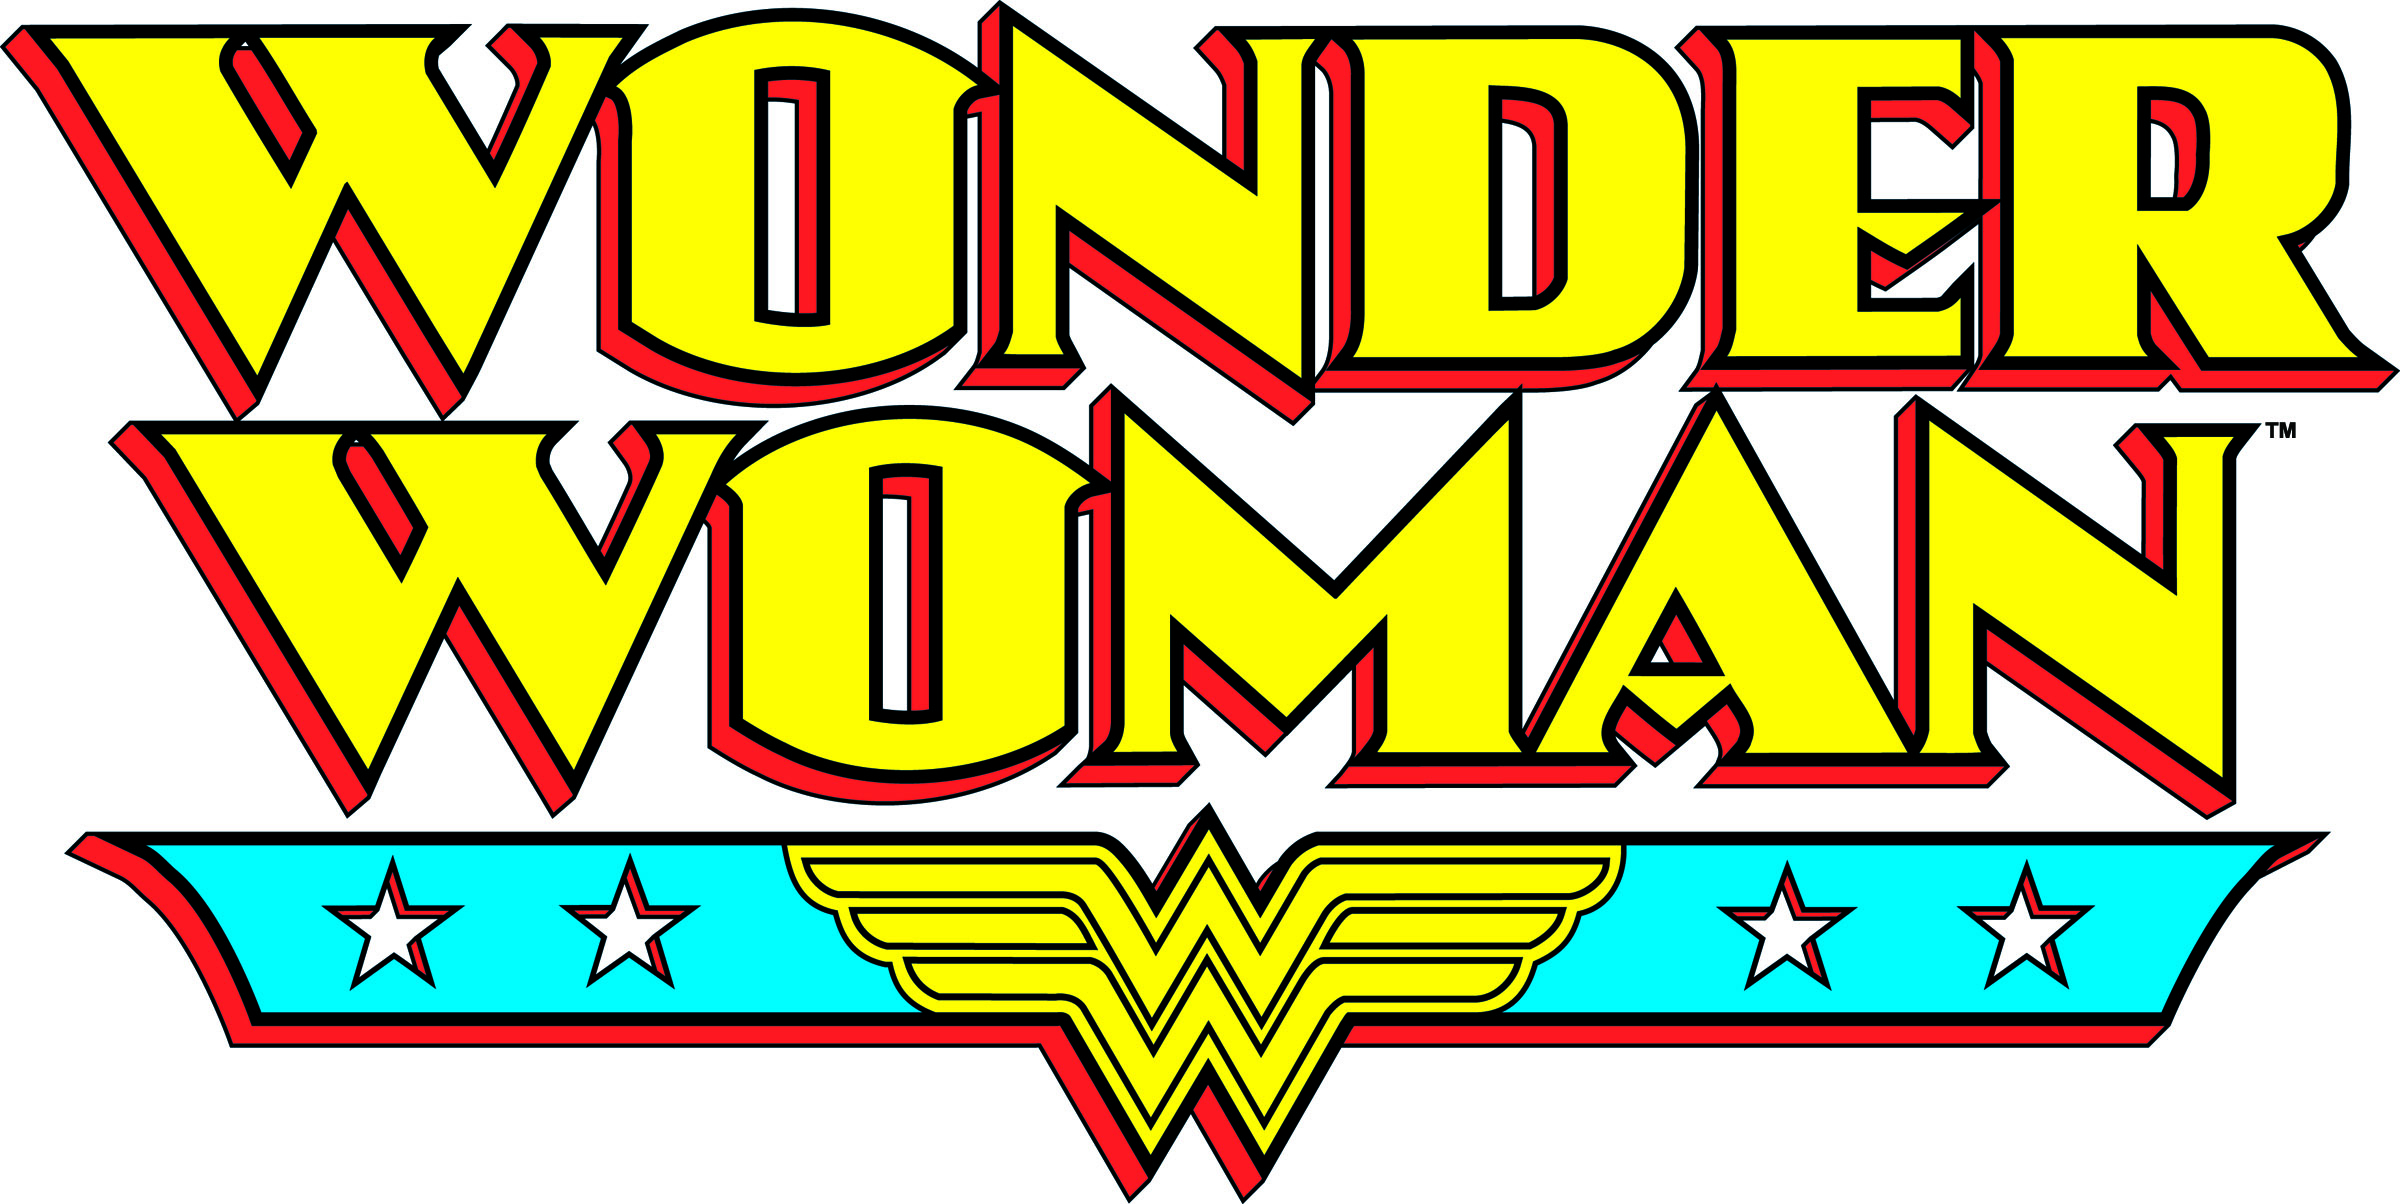 Wonder woman clipart letters picture royalty free library Wonder woman rainbow symbol clipart - Clip Art Library picture royalty free library